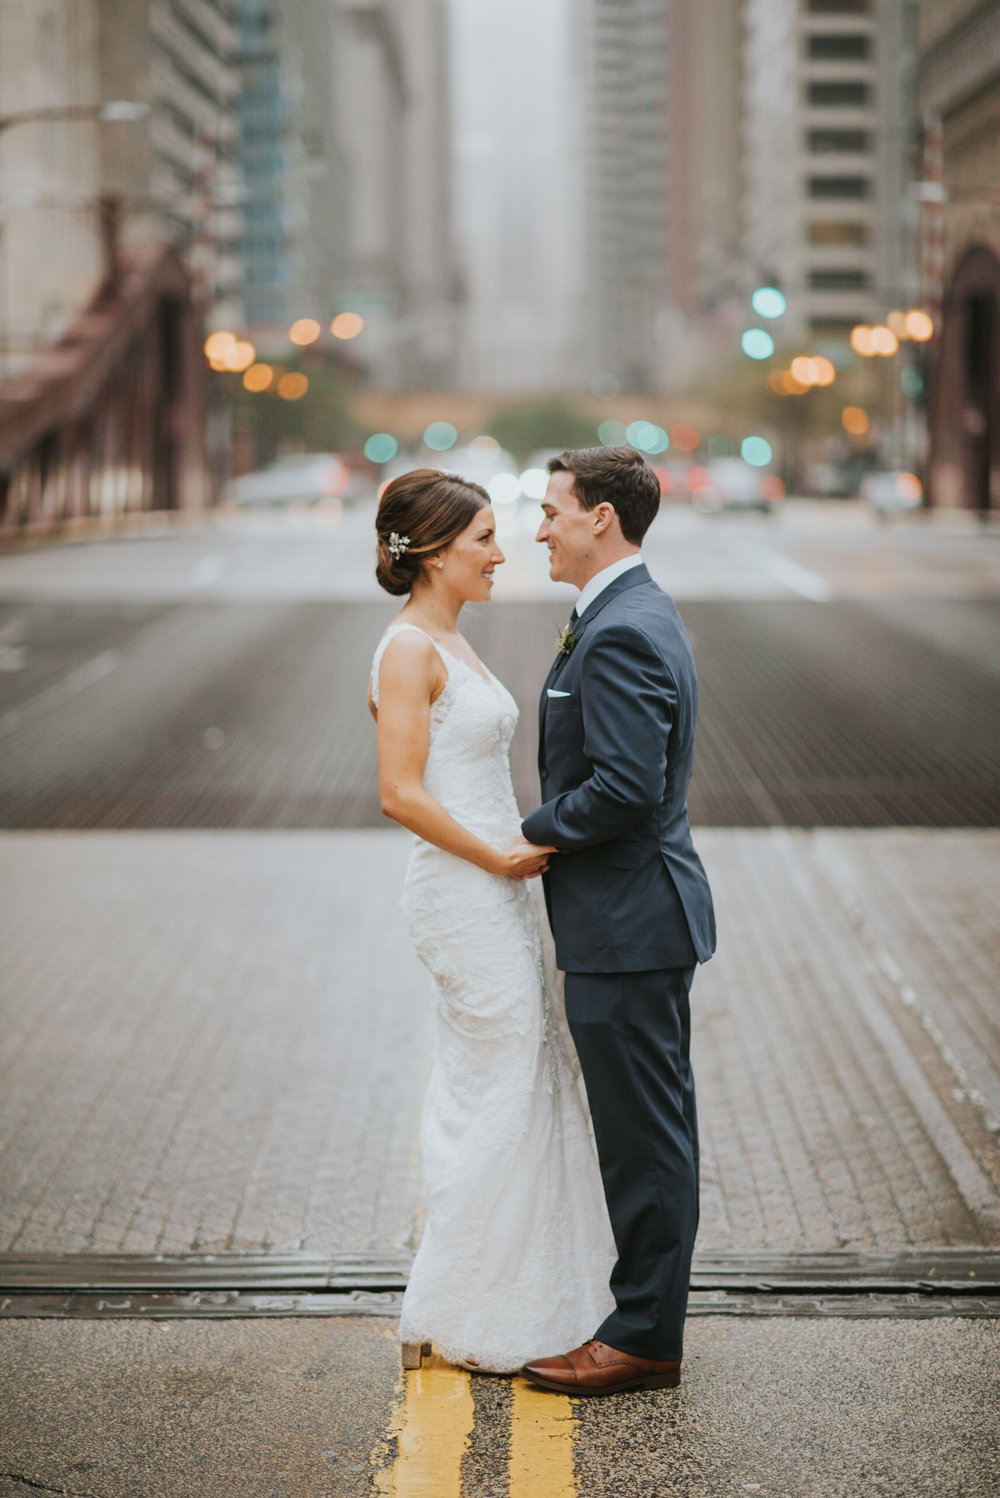 HaroldWashingtonLibraryWedding_Polly C Photography 1704144725.jpg